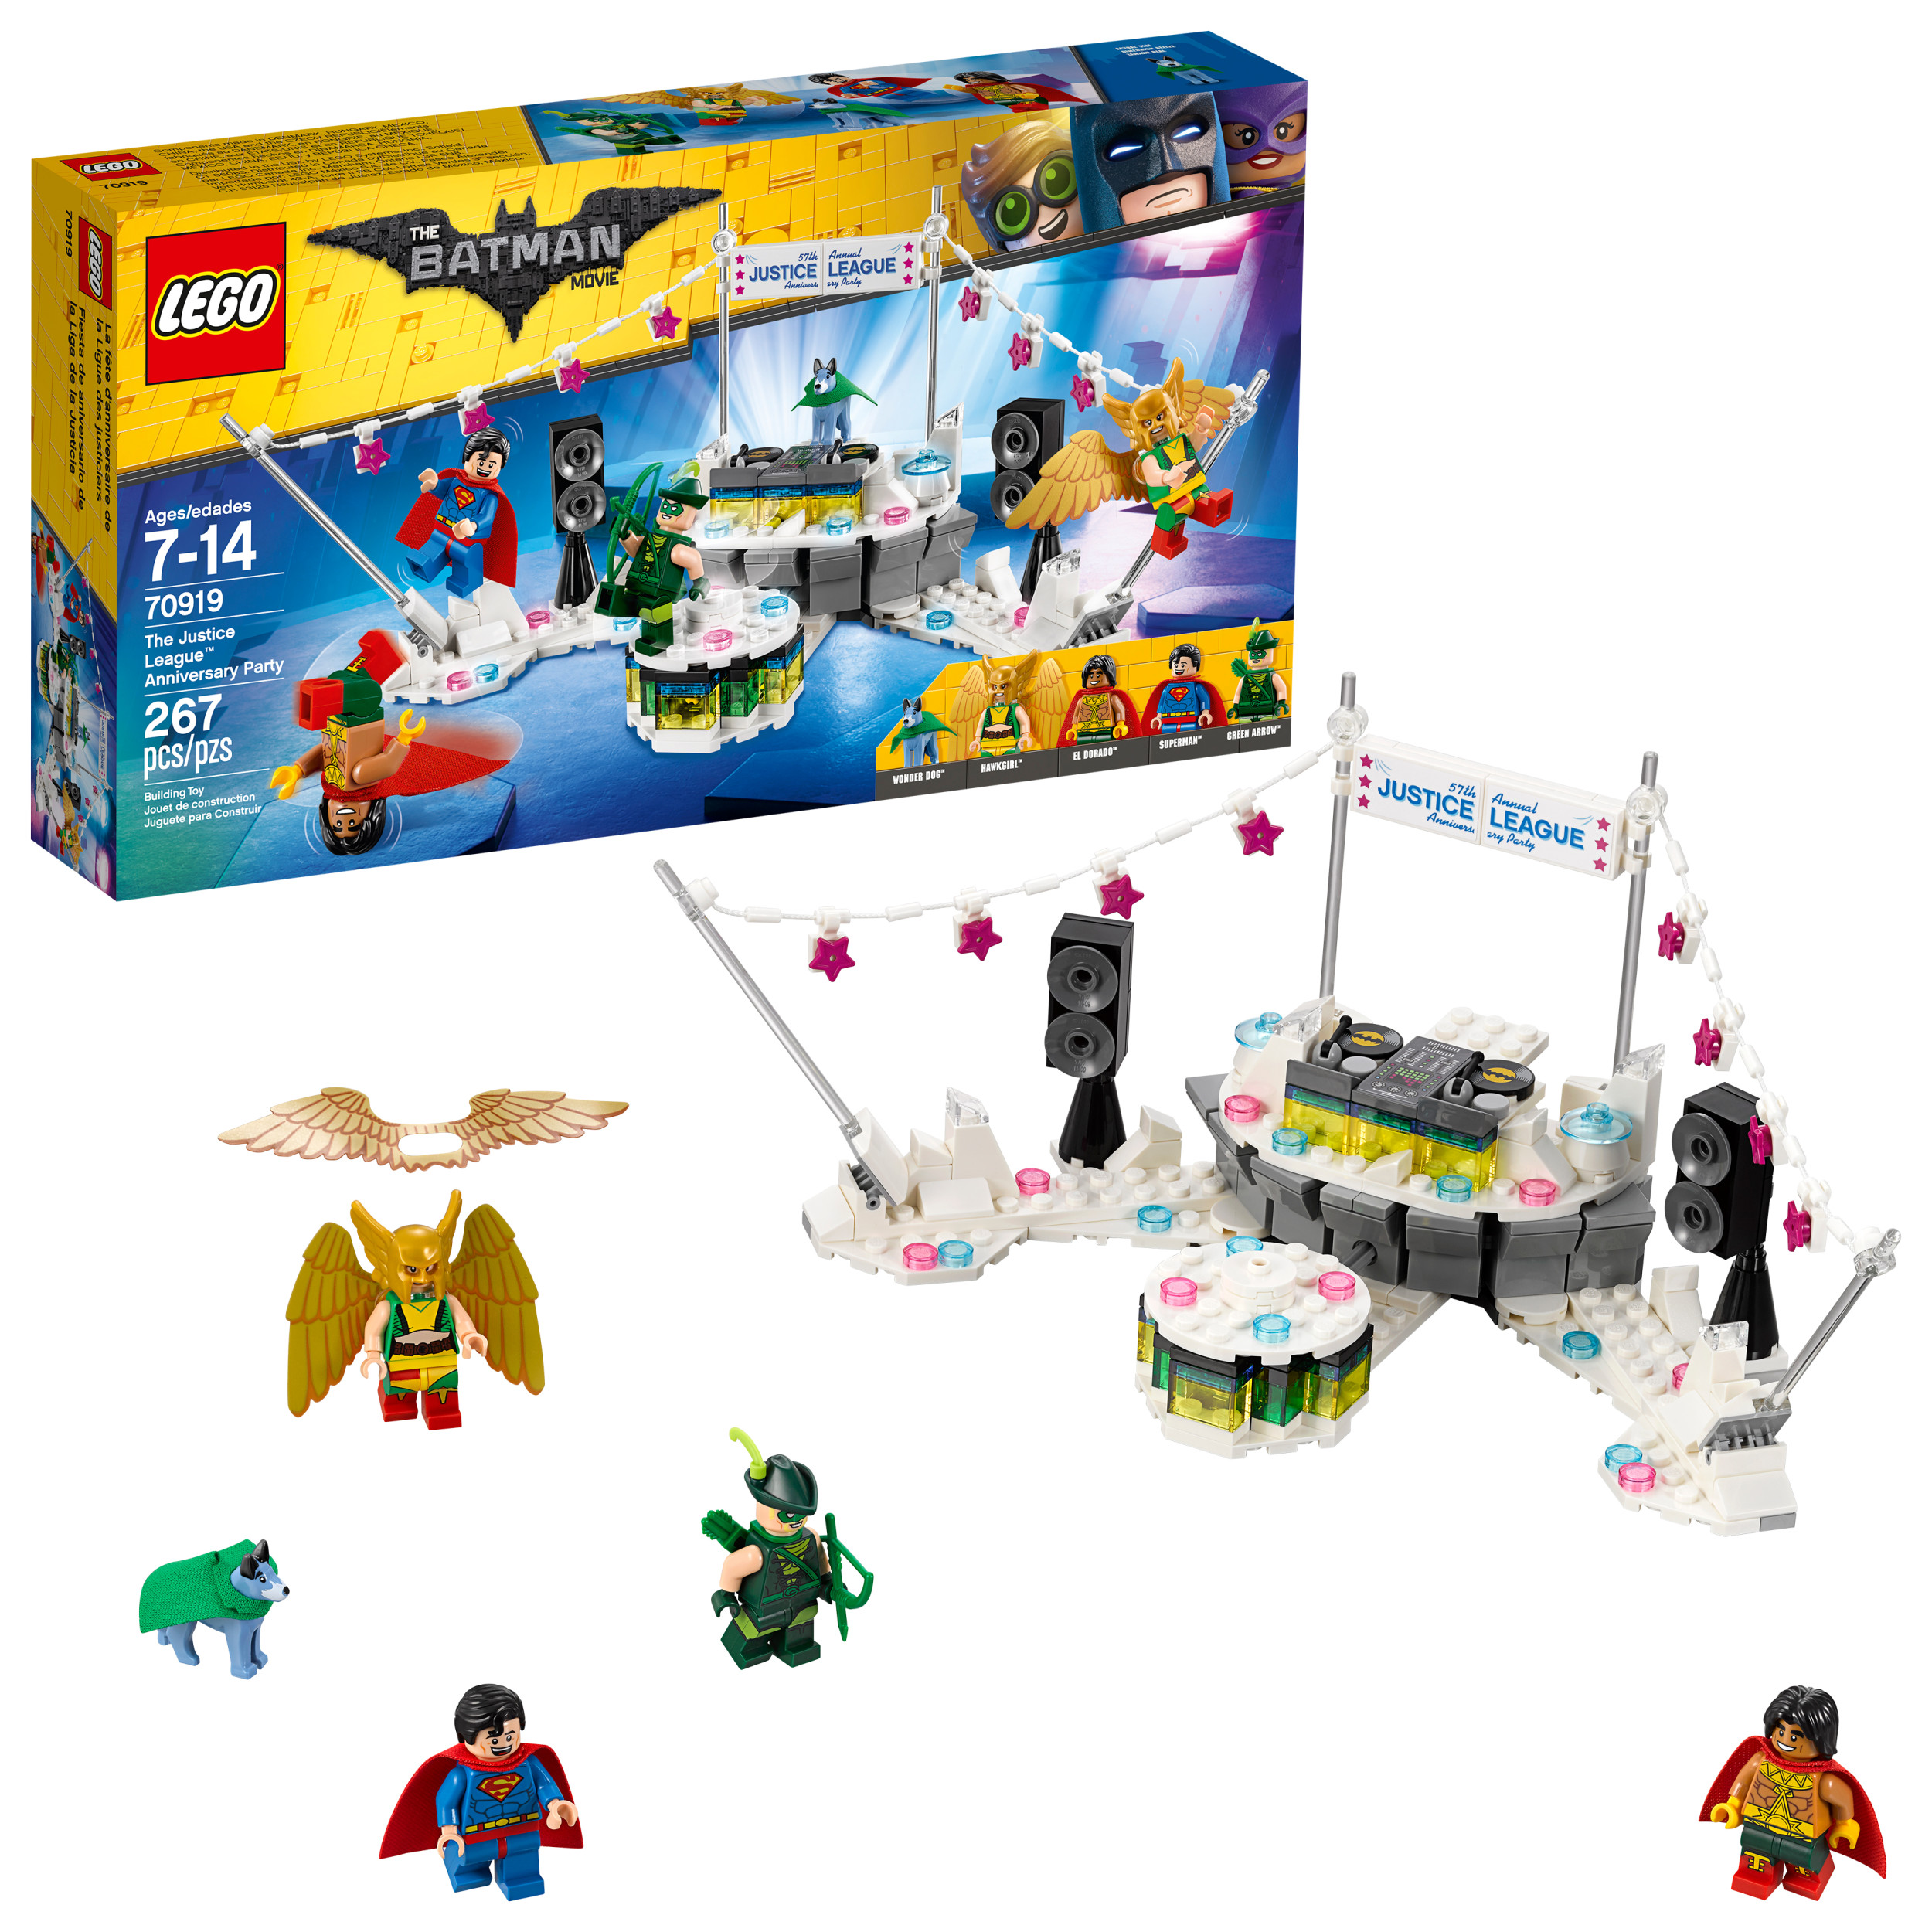 Lego Batman Movie The Justice League Anniversary Party 70919 by LEGO System Inc